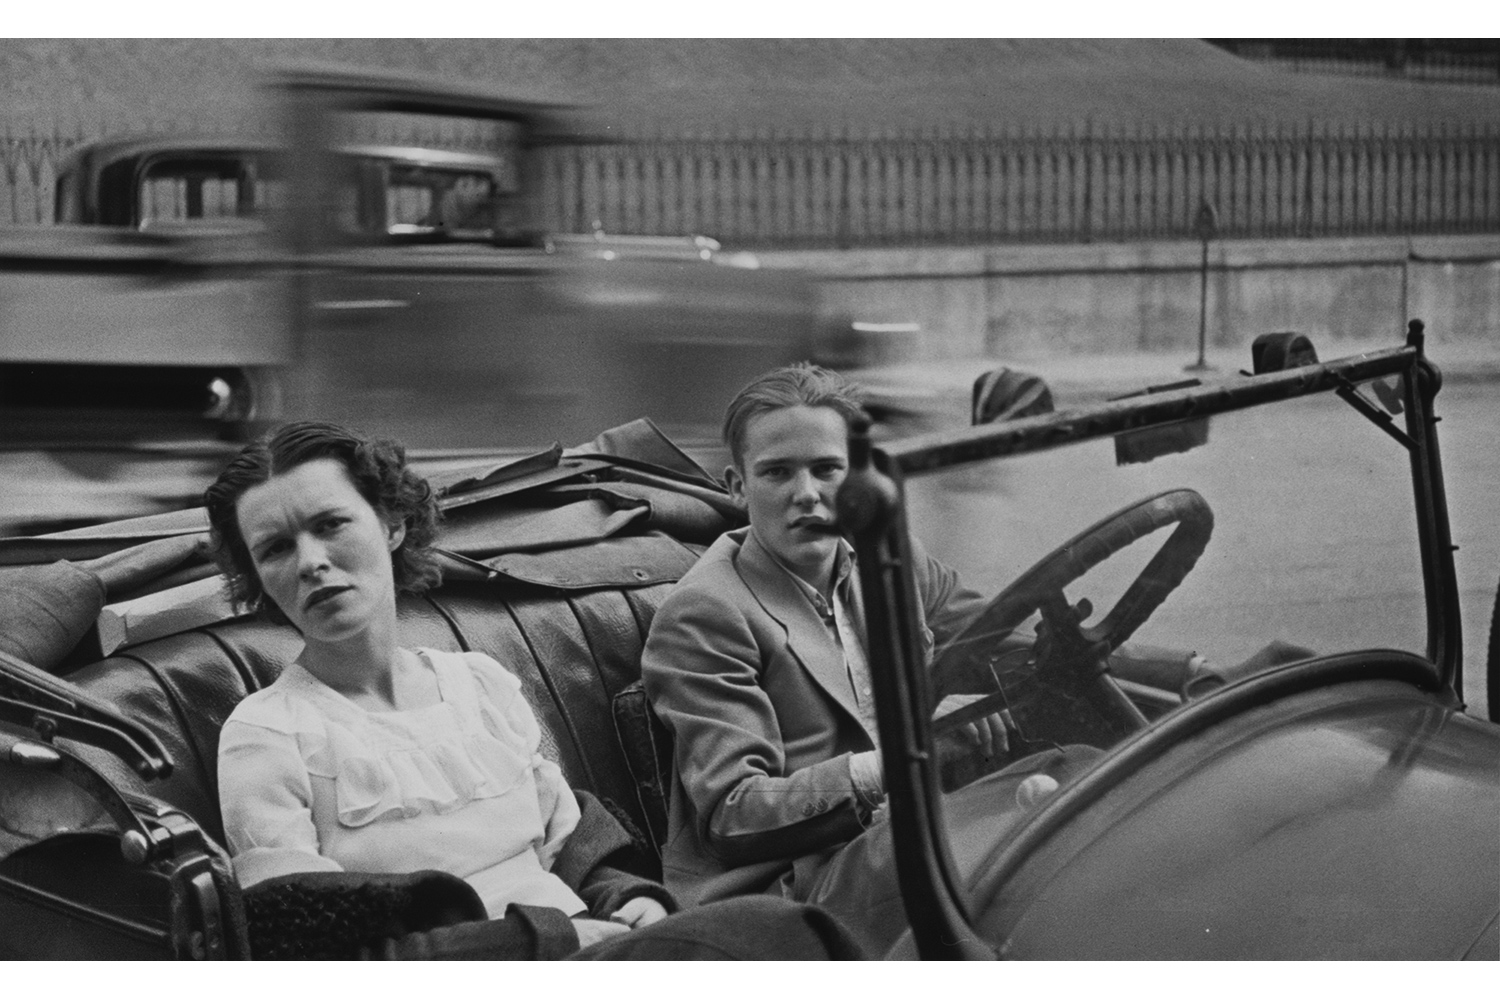 [Young Couple in Parked Open-Air Car, Ossining, New York], 1932–34                                                                                             © Walker Evans Archive, The Metropolitan Museum of Art